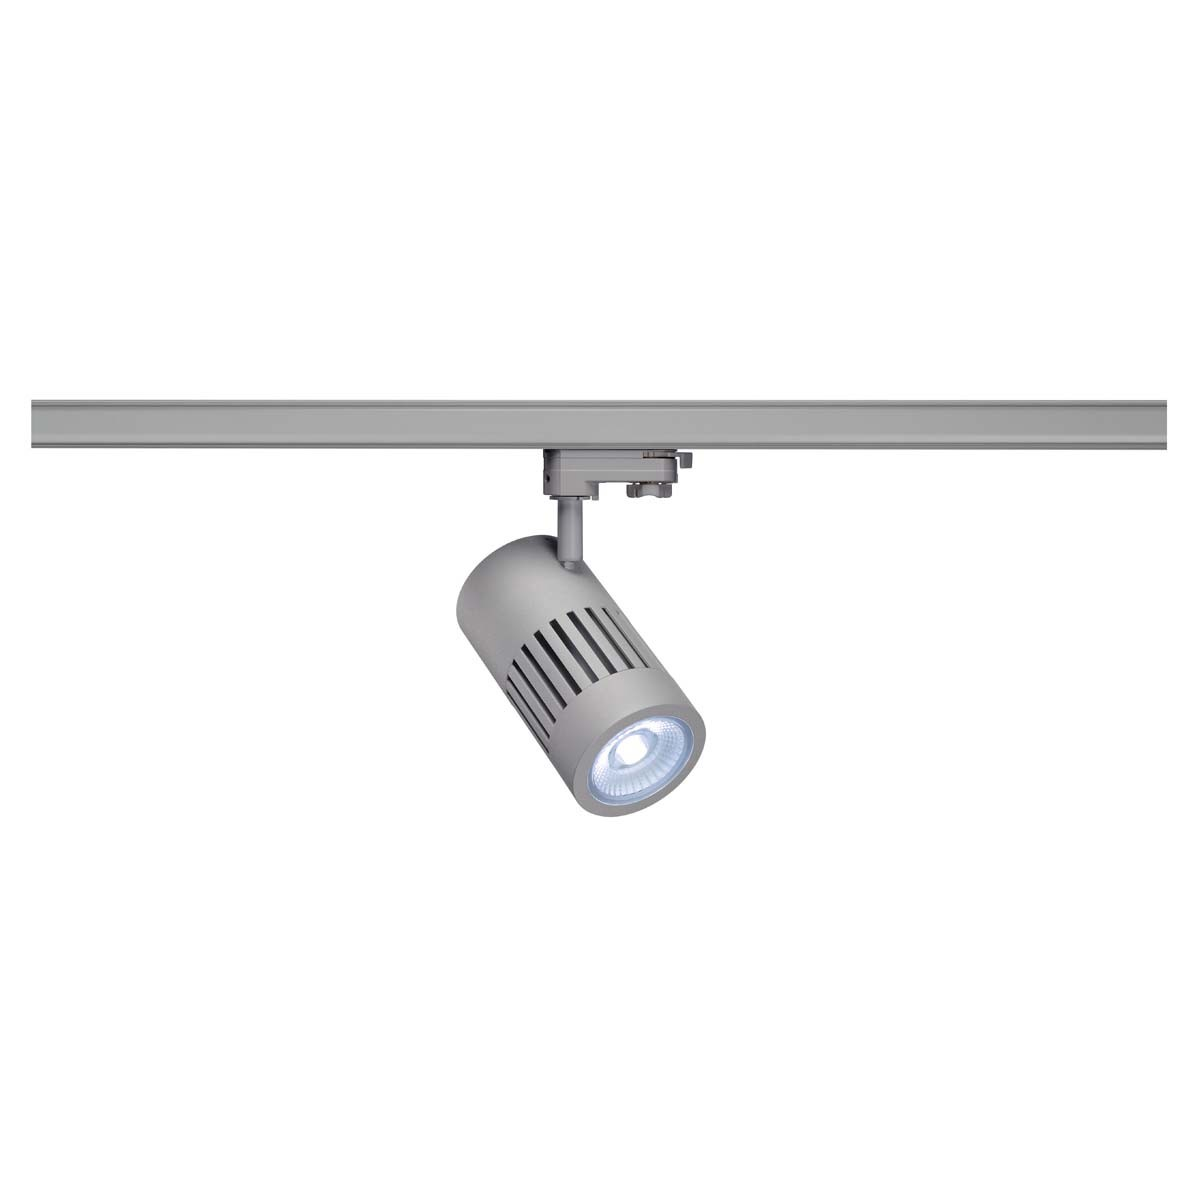 SLV 176074 STRUCTEC LED 30W, round, silver, 4000K, 60°, incl. 3-phase adapter